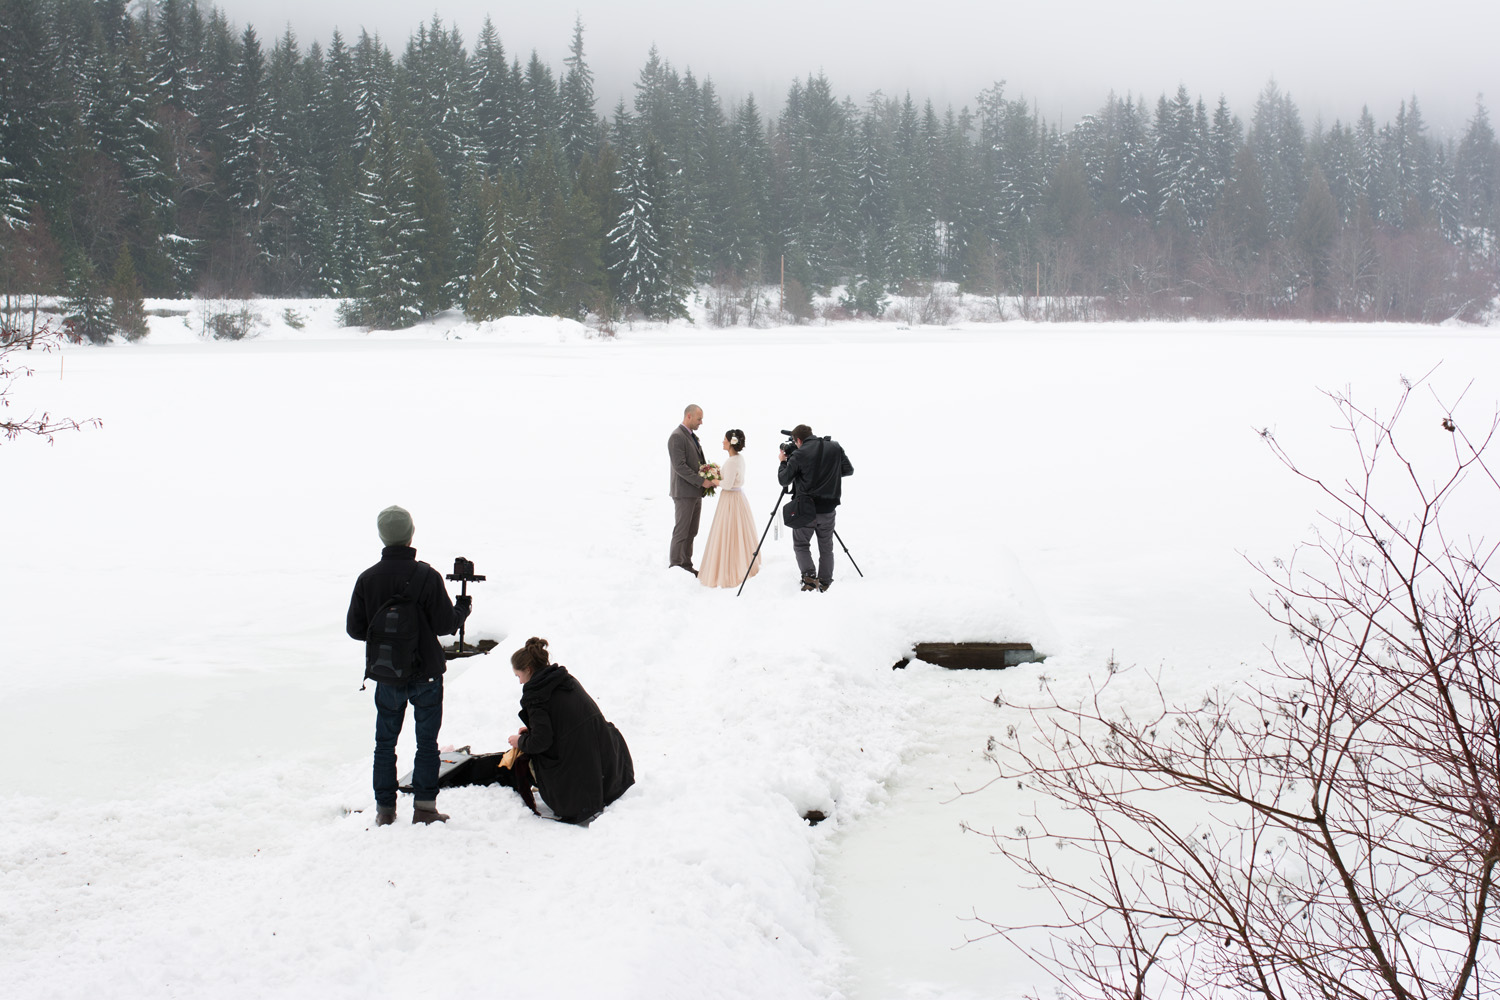 The wedding took place at the picturesque Nita Lake Lodge. We set up most of the shots on a tiny dock on the frozen lake. Adam even had to risk falling through the ice in order to get the shots.